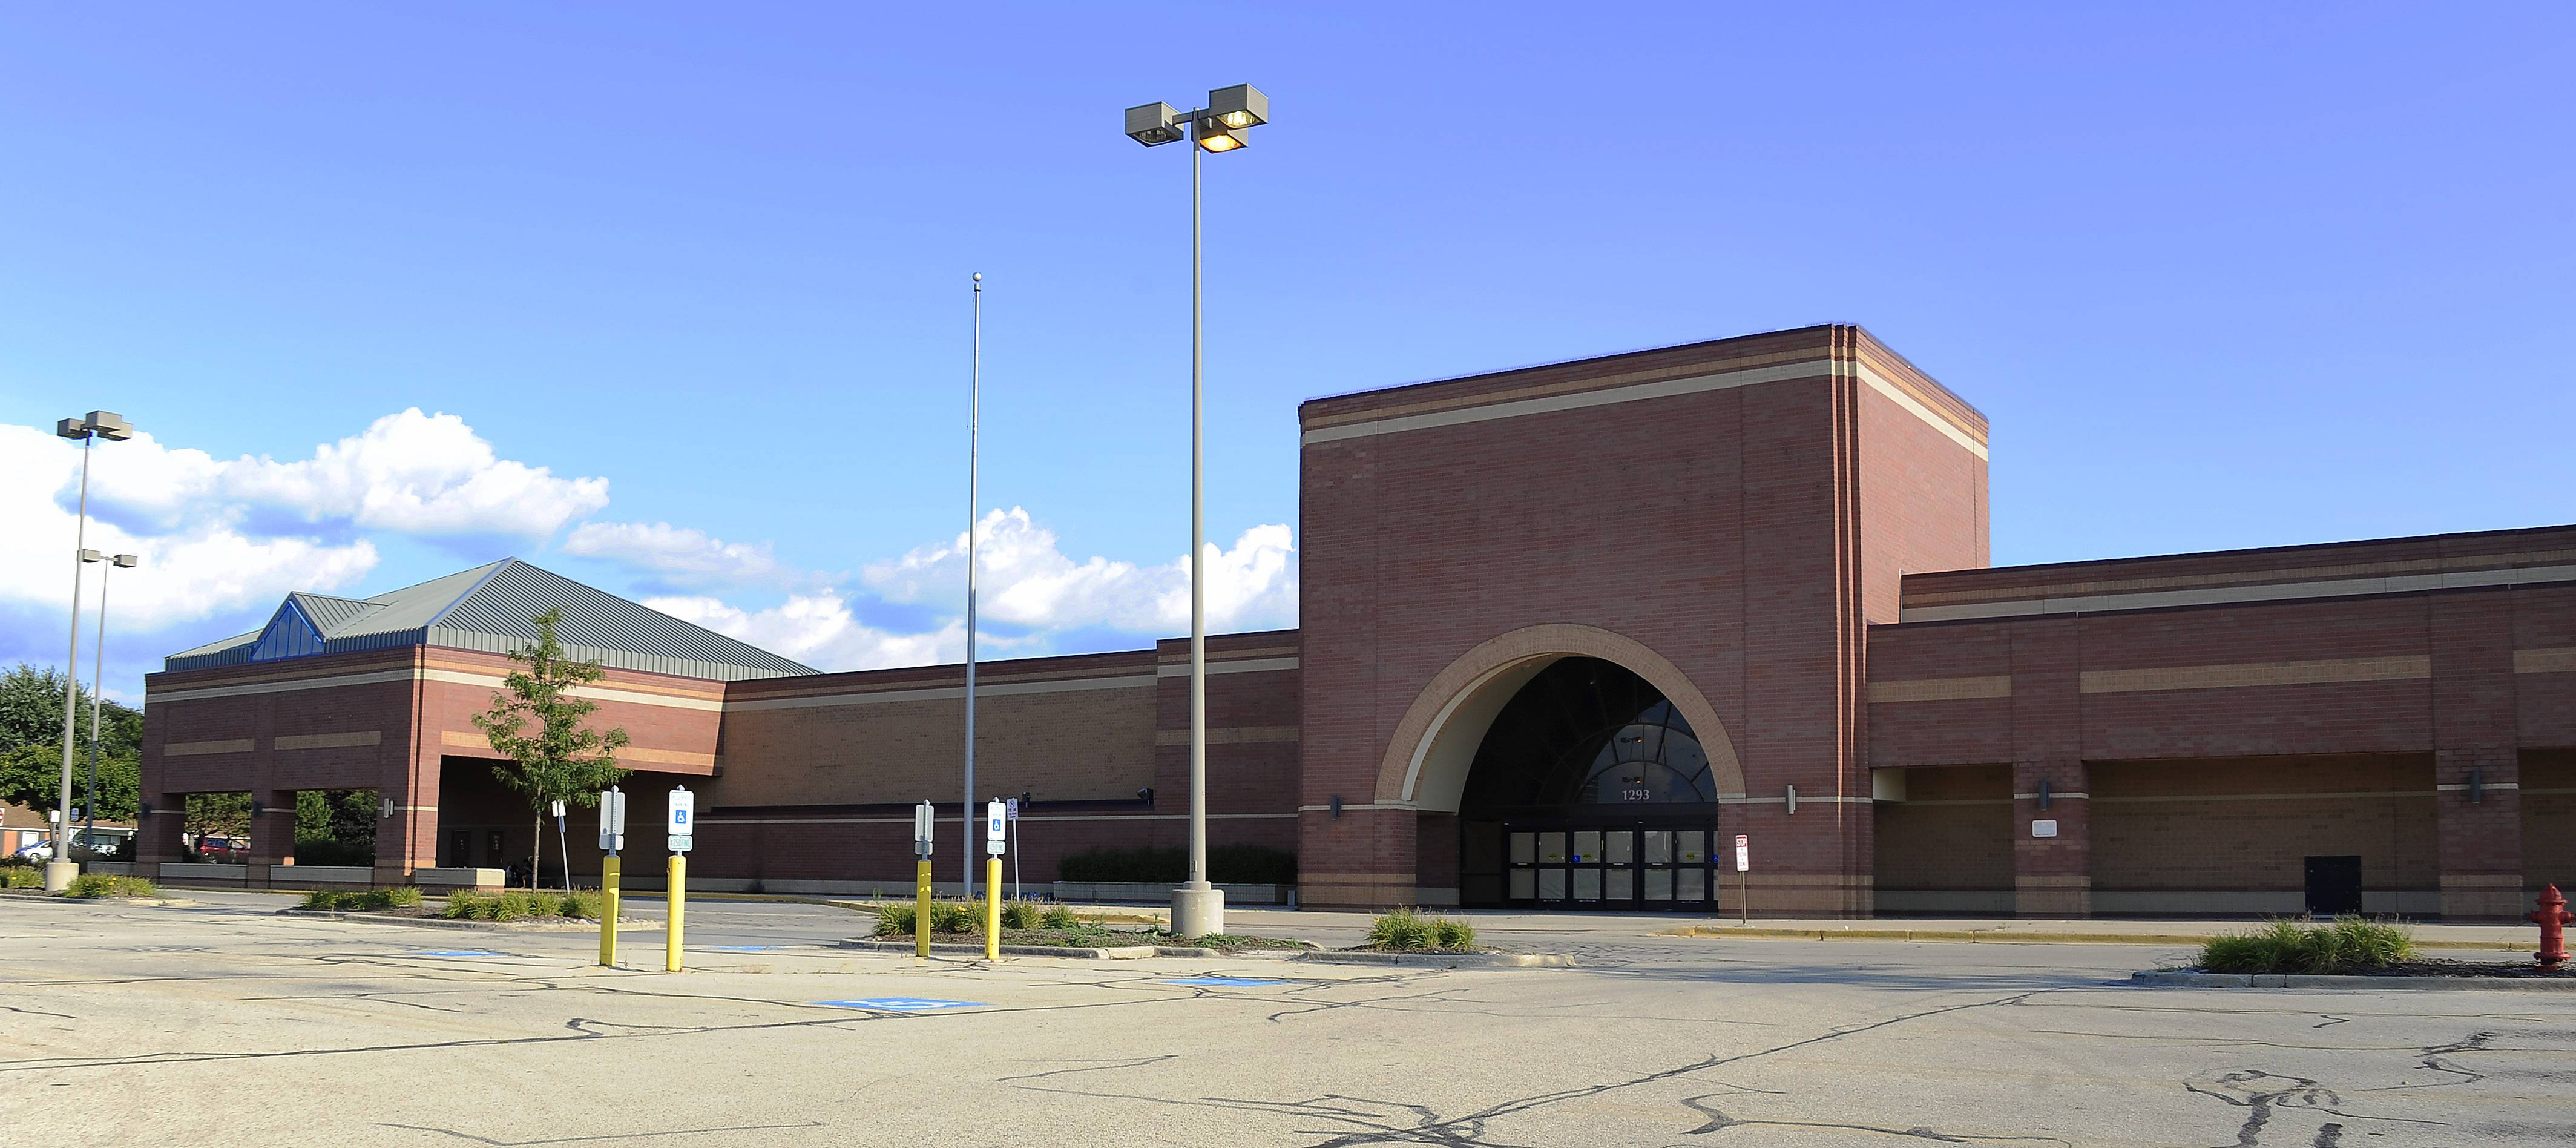 Art Van Furniture Plans To Open In The Vacant Dominicku0027s Grocery Store At  The Intersection Of